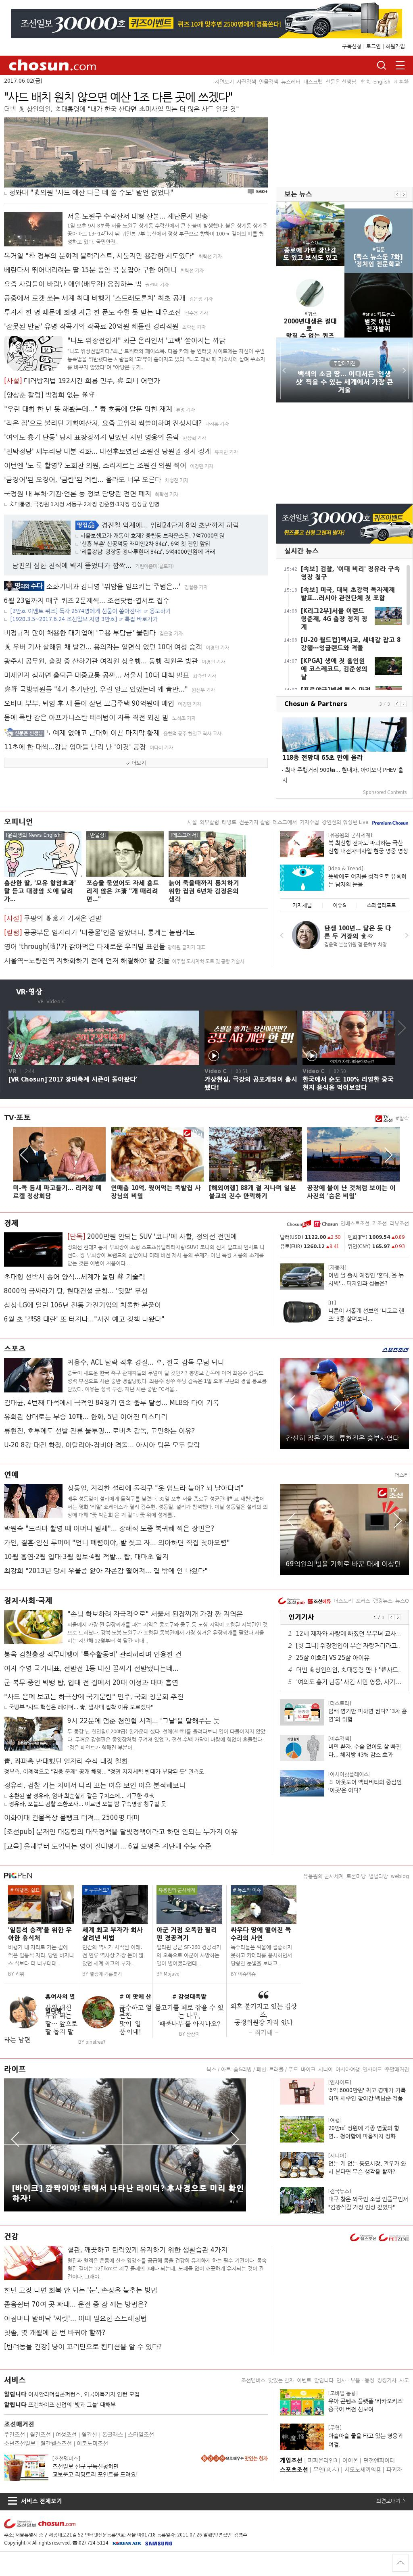 chosun.com at Thursday June 1, 2017, 4:04 p.m. UTC